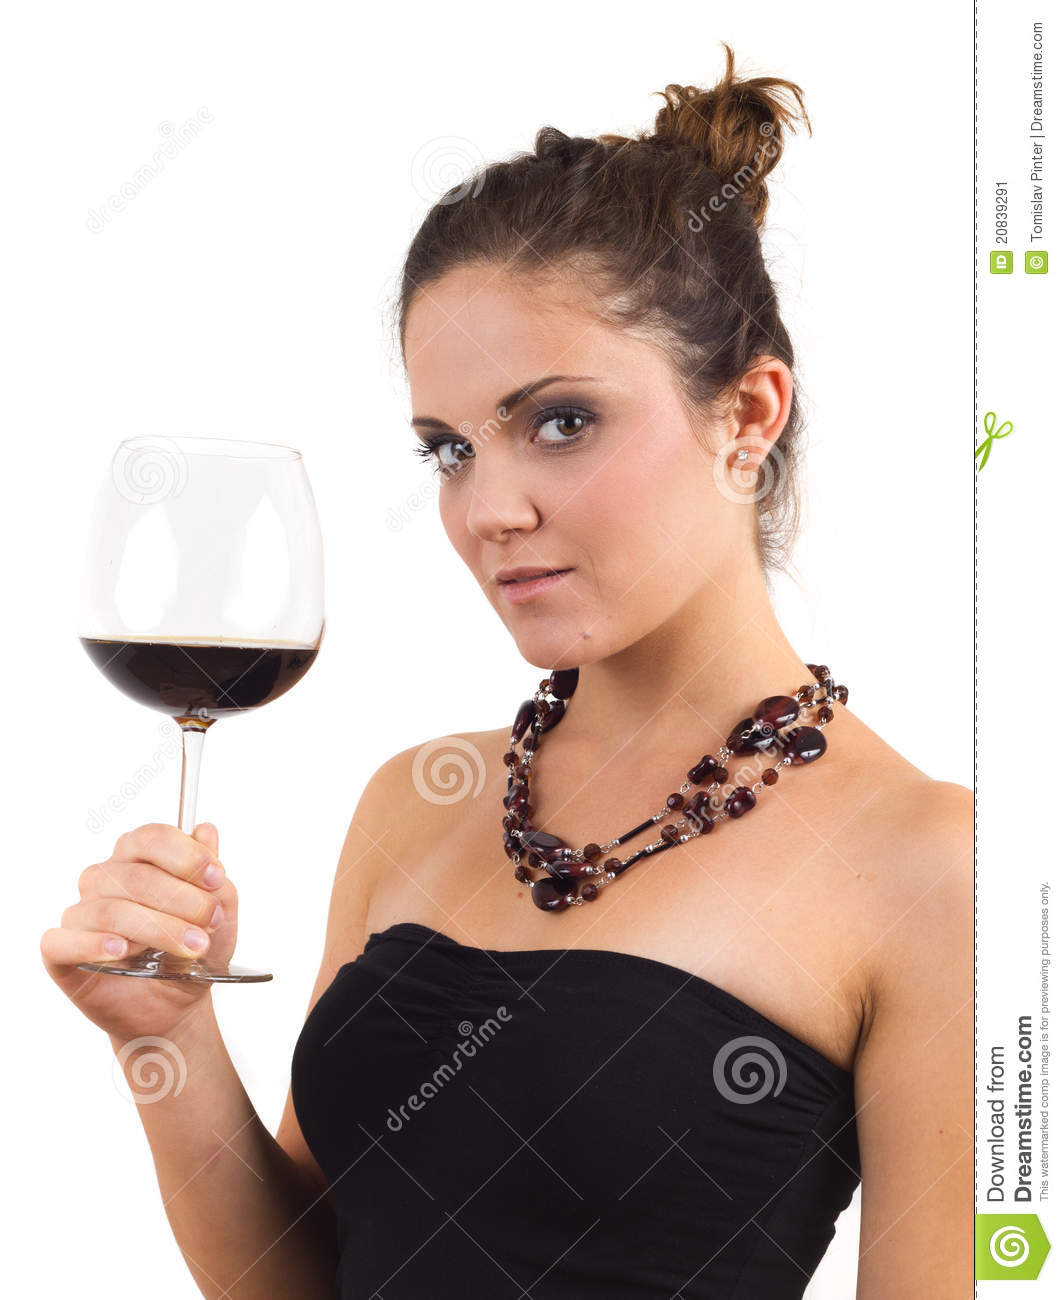 Woman Holding A Glass Of Wine Stock Image - Image: 20839291